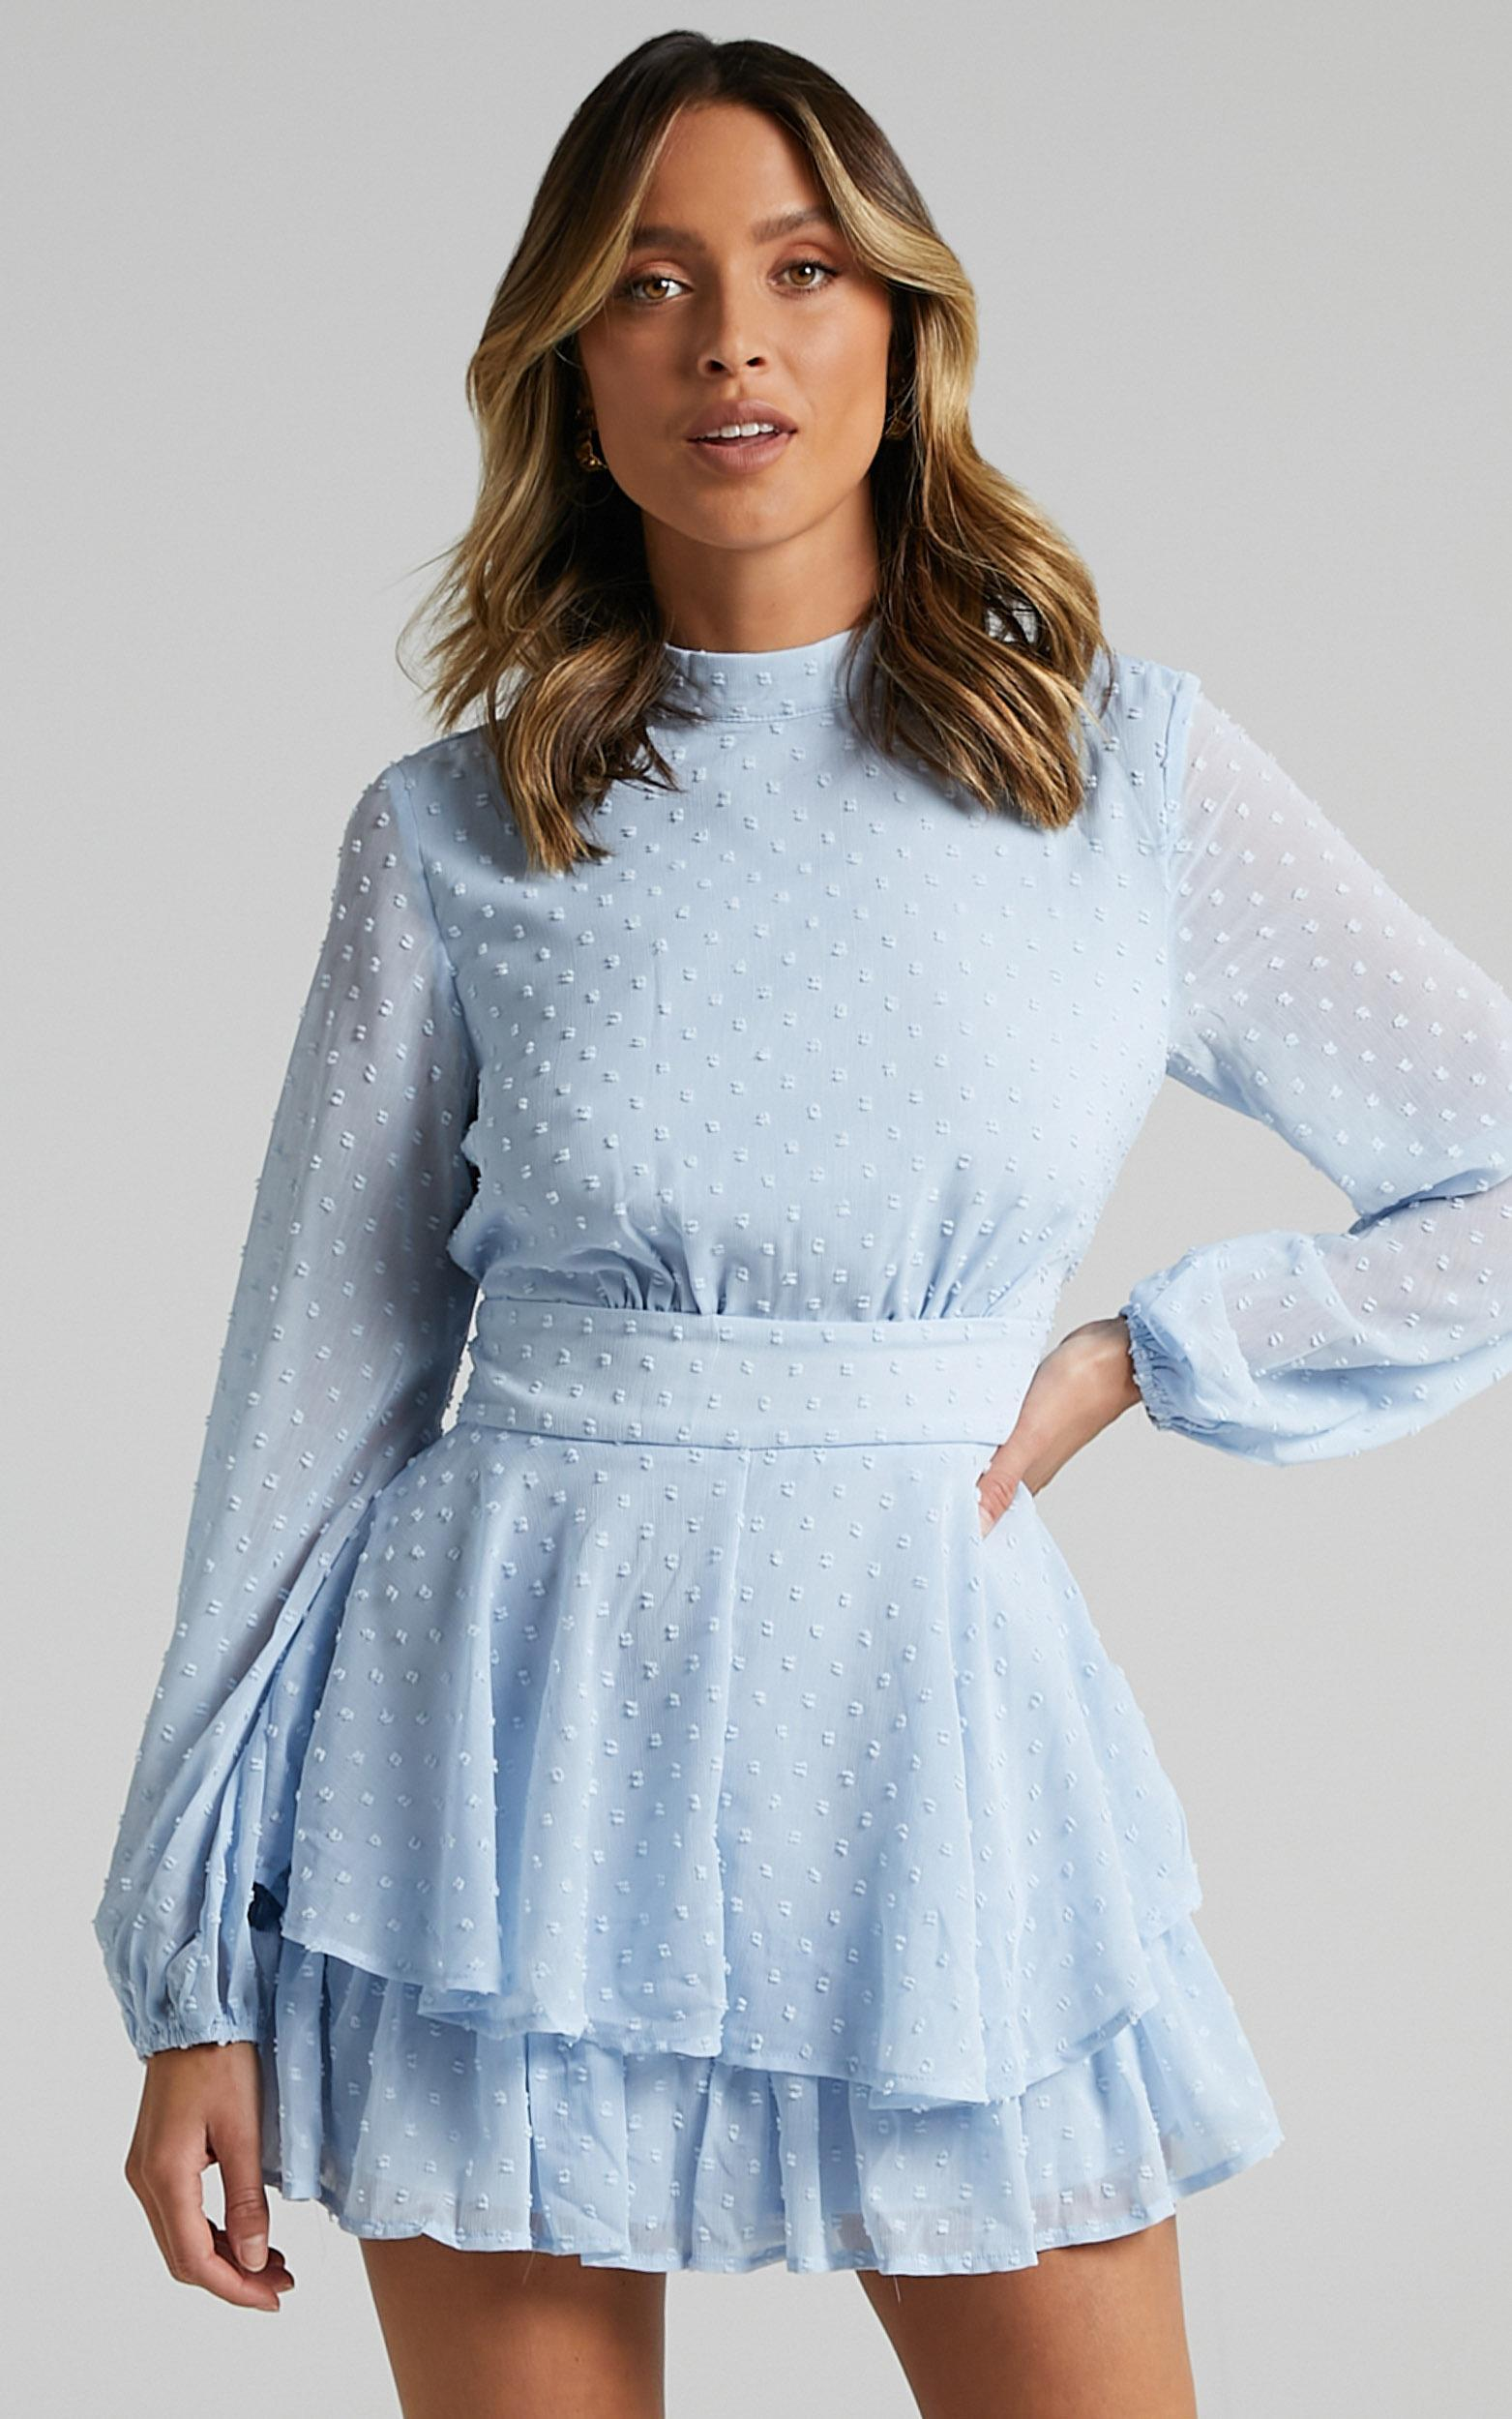 Bottom Of Your Heart Playsuit In Light Blue - 4 (XXS), BLU15, hi-res image number null